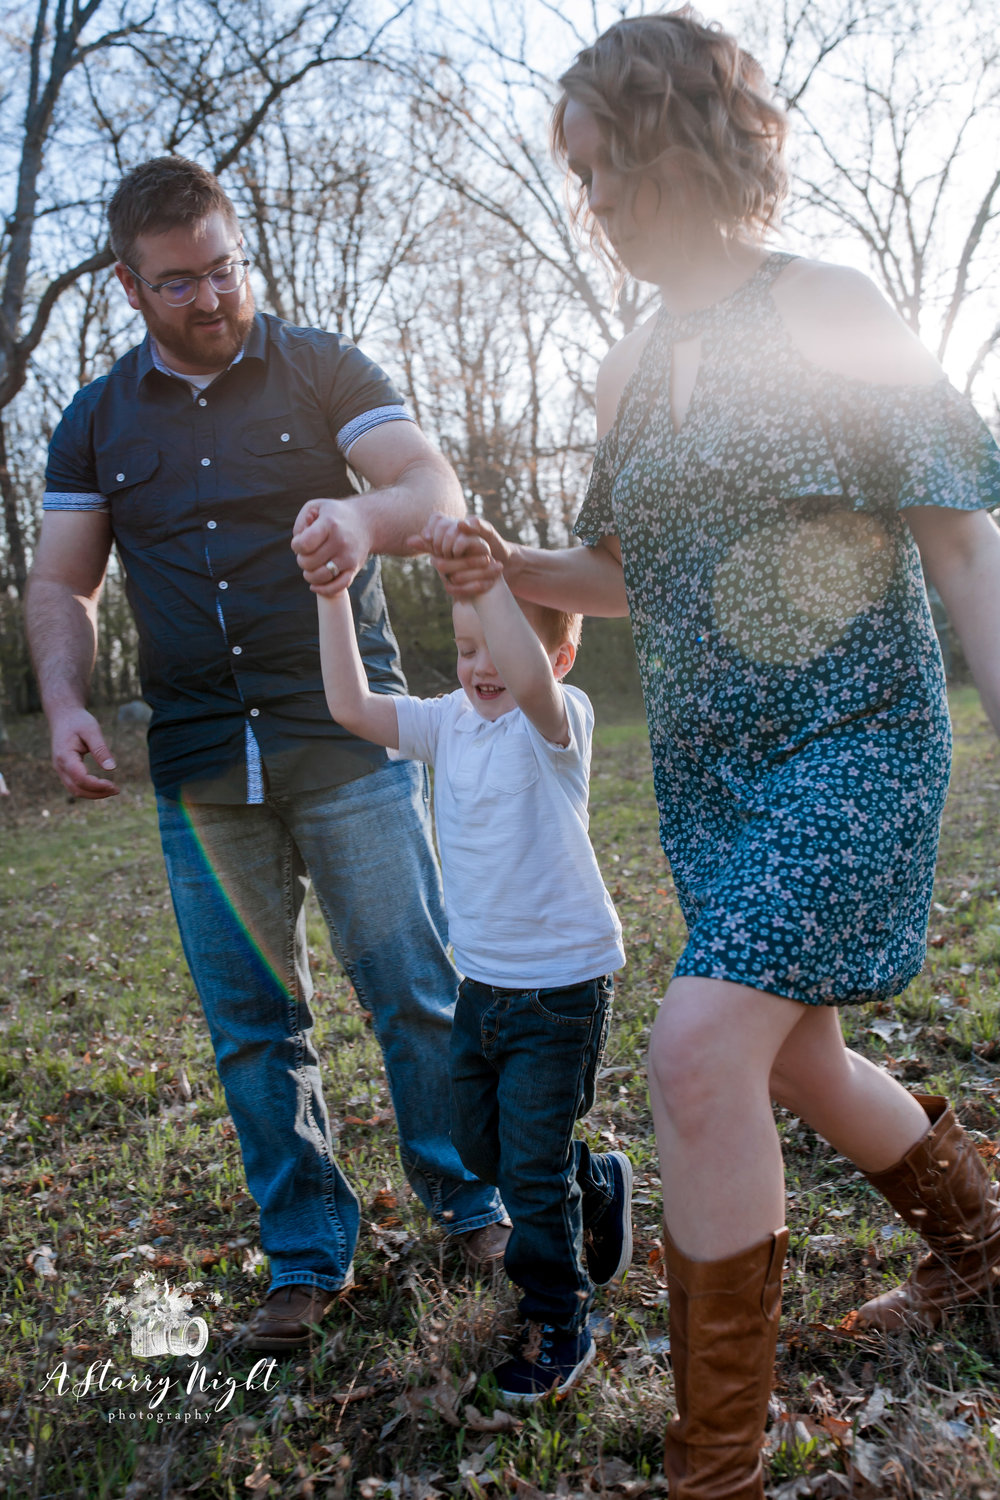 Clare-Midland-Michigan-Family-Photography-swinging.jpg